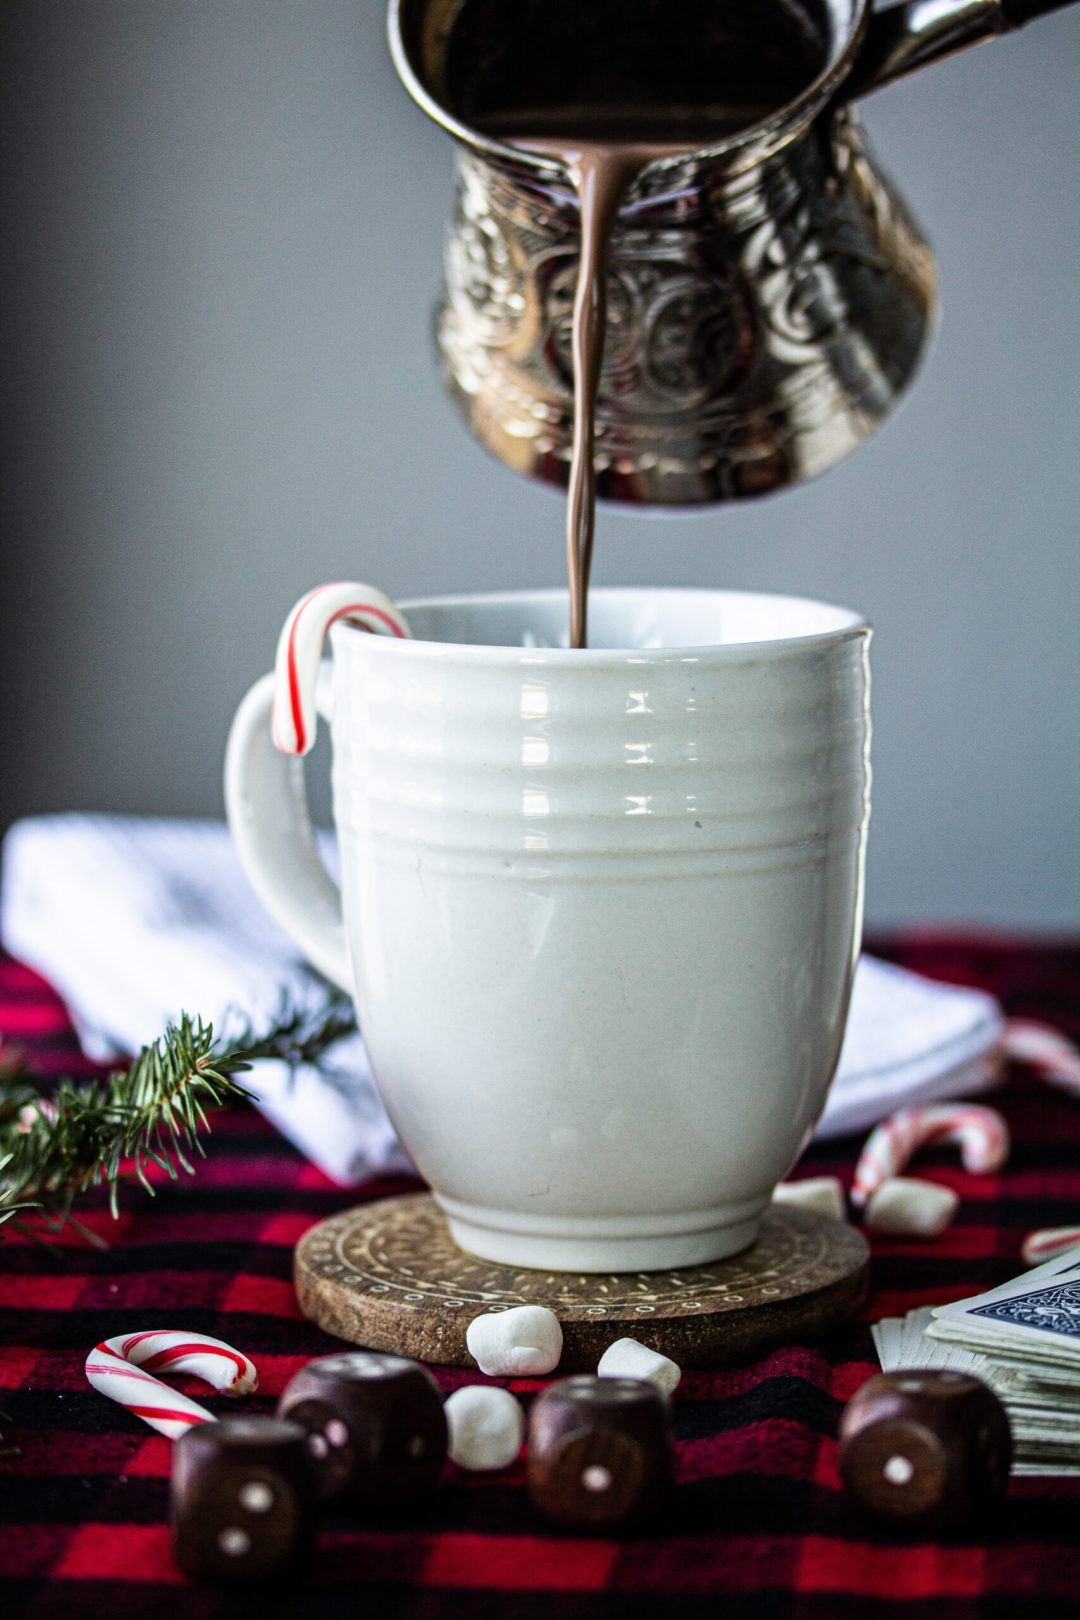 Pouring hot chocolate in mug